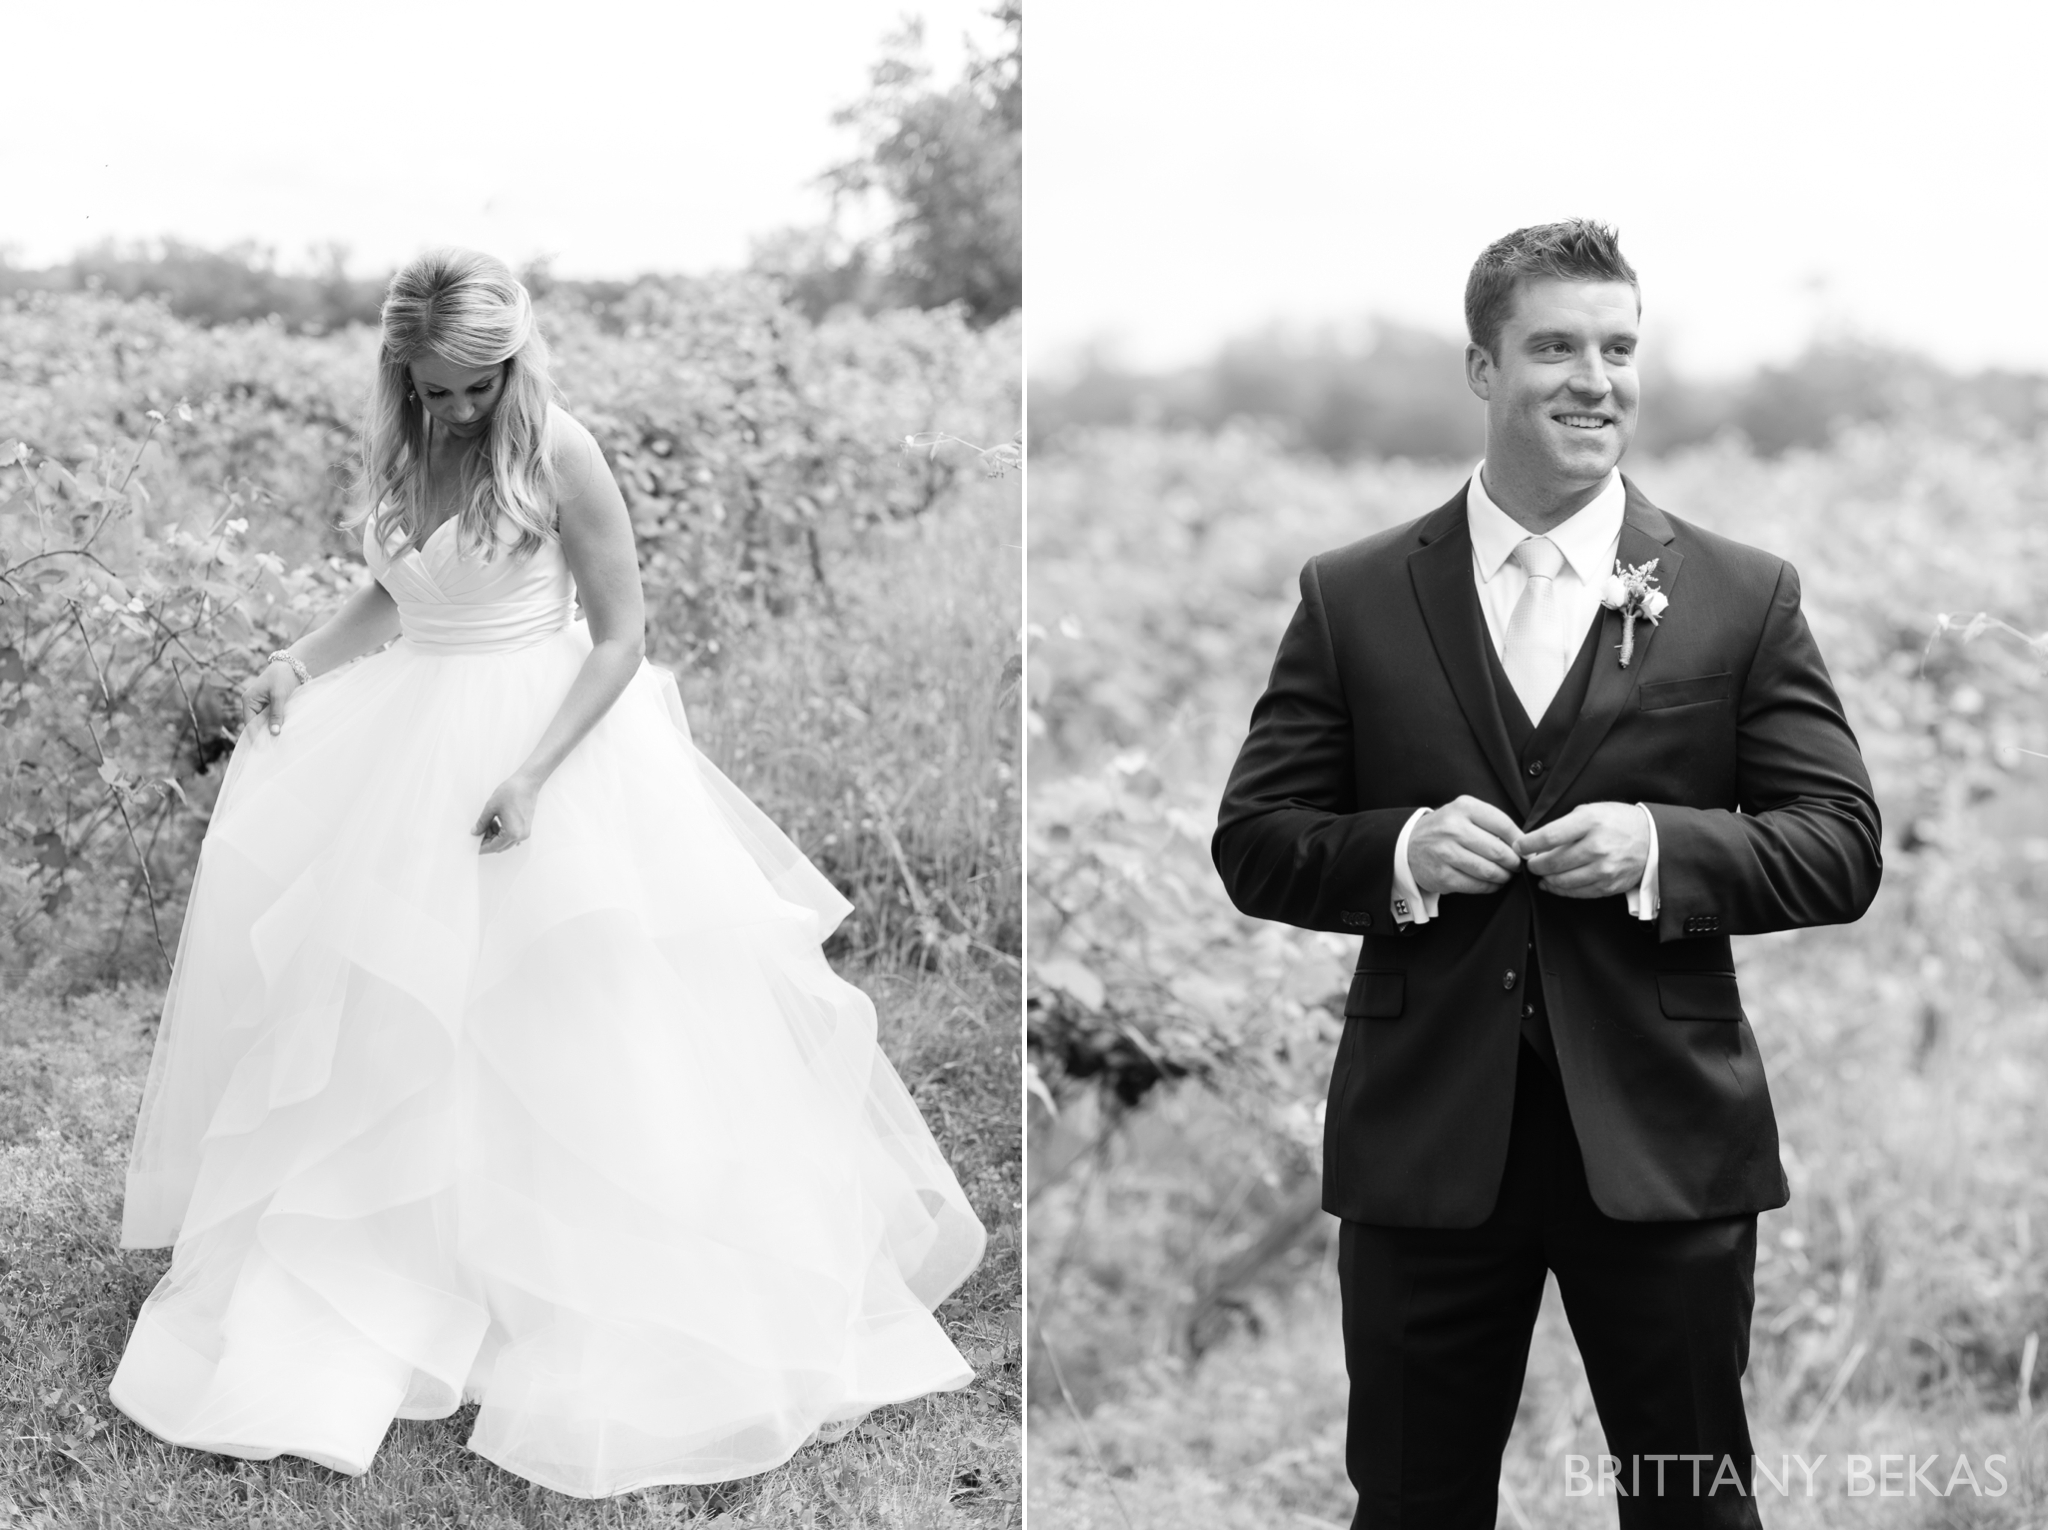 New Buffalo Wedding - Willow Harbor Vineyards Wedding Photos - Brittany Bekas Photography_0028